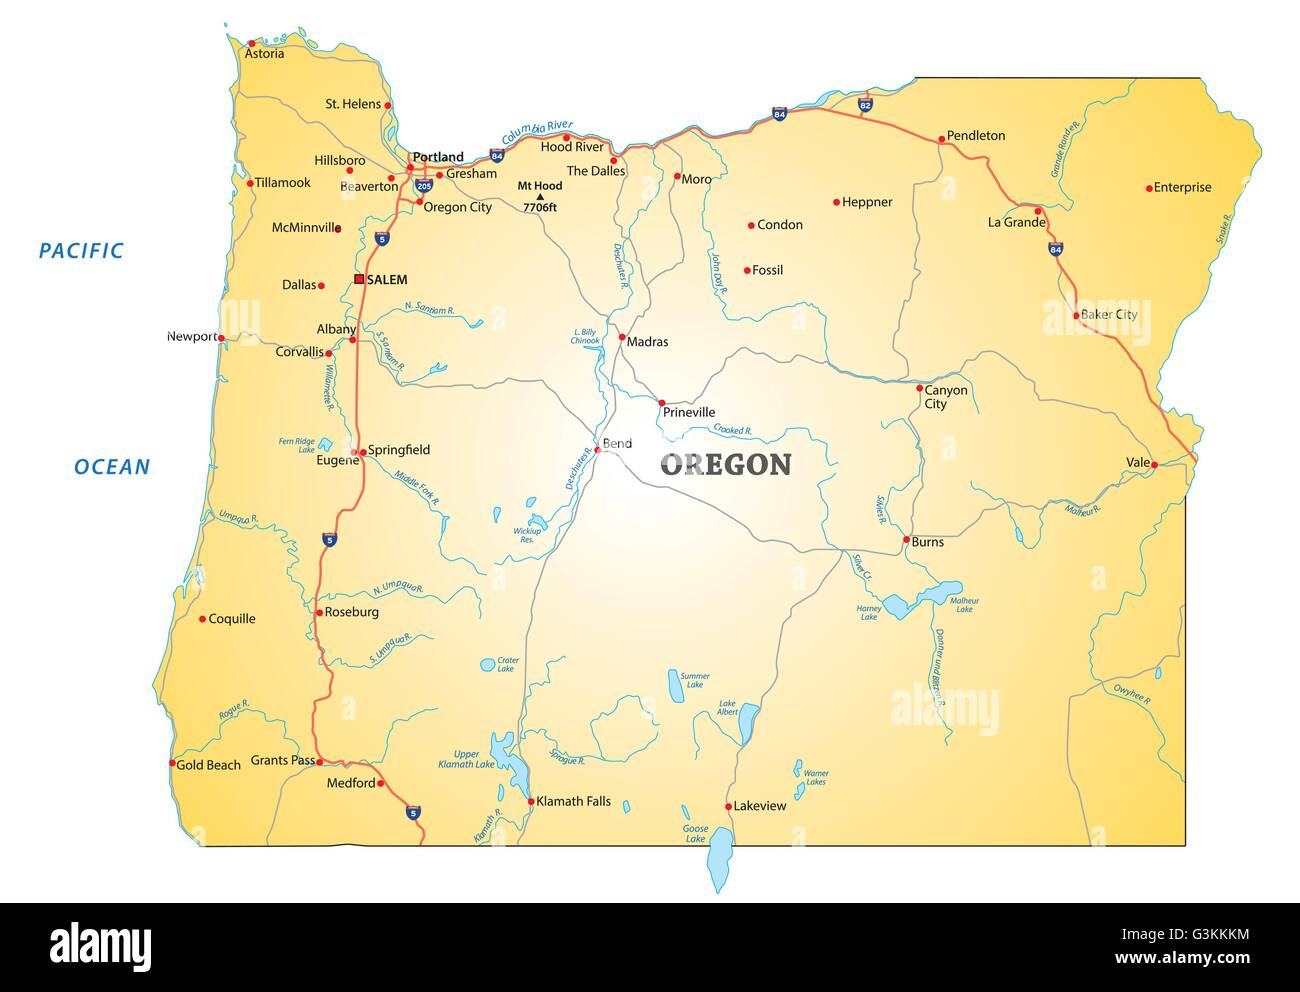 oregon state map Map Of Oregon State Stock Photos Map Of Oregon State Stock oregon state map